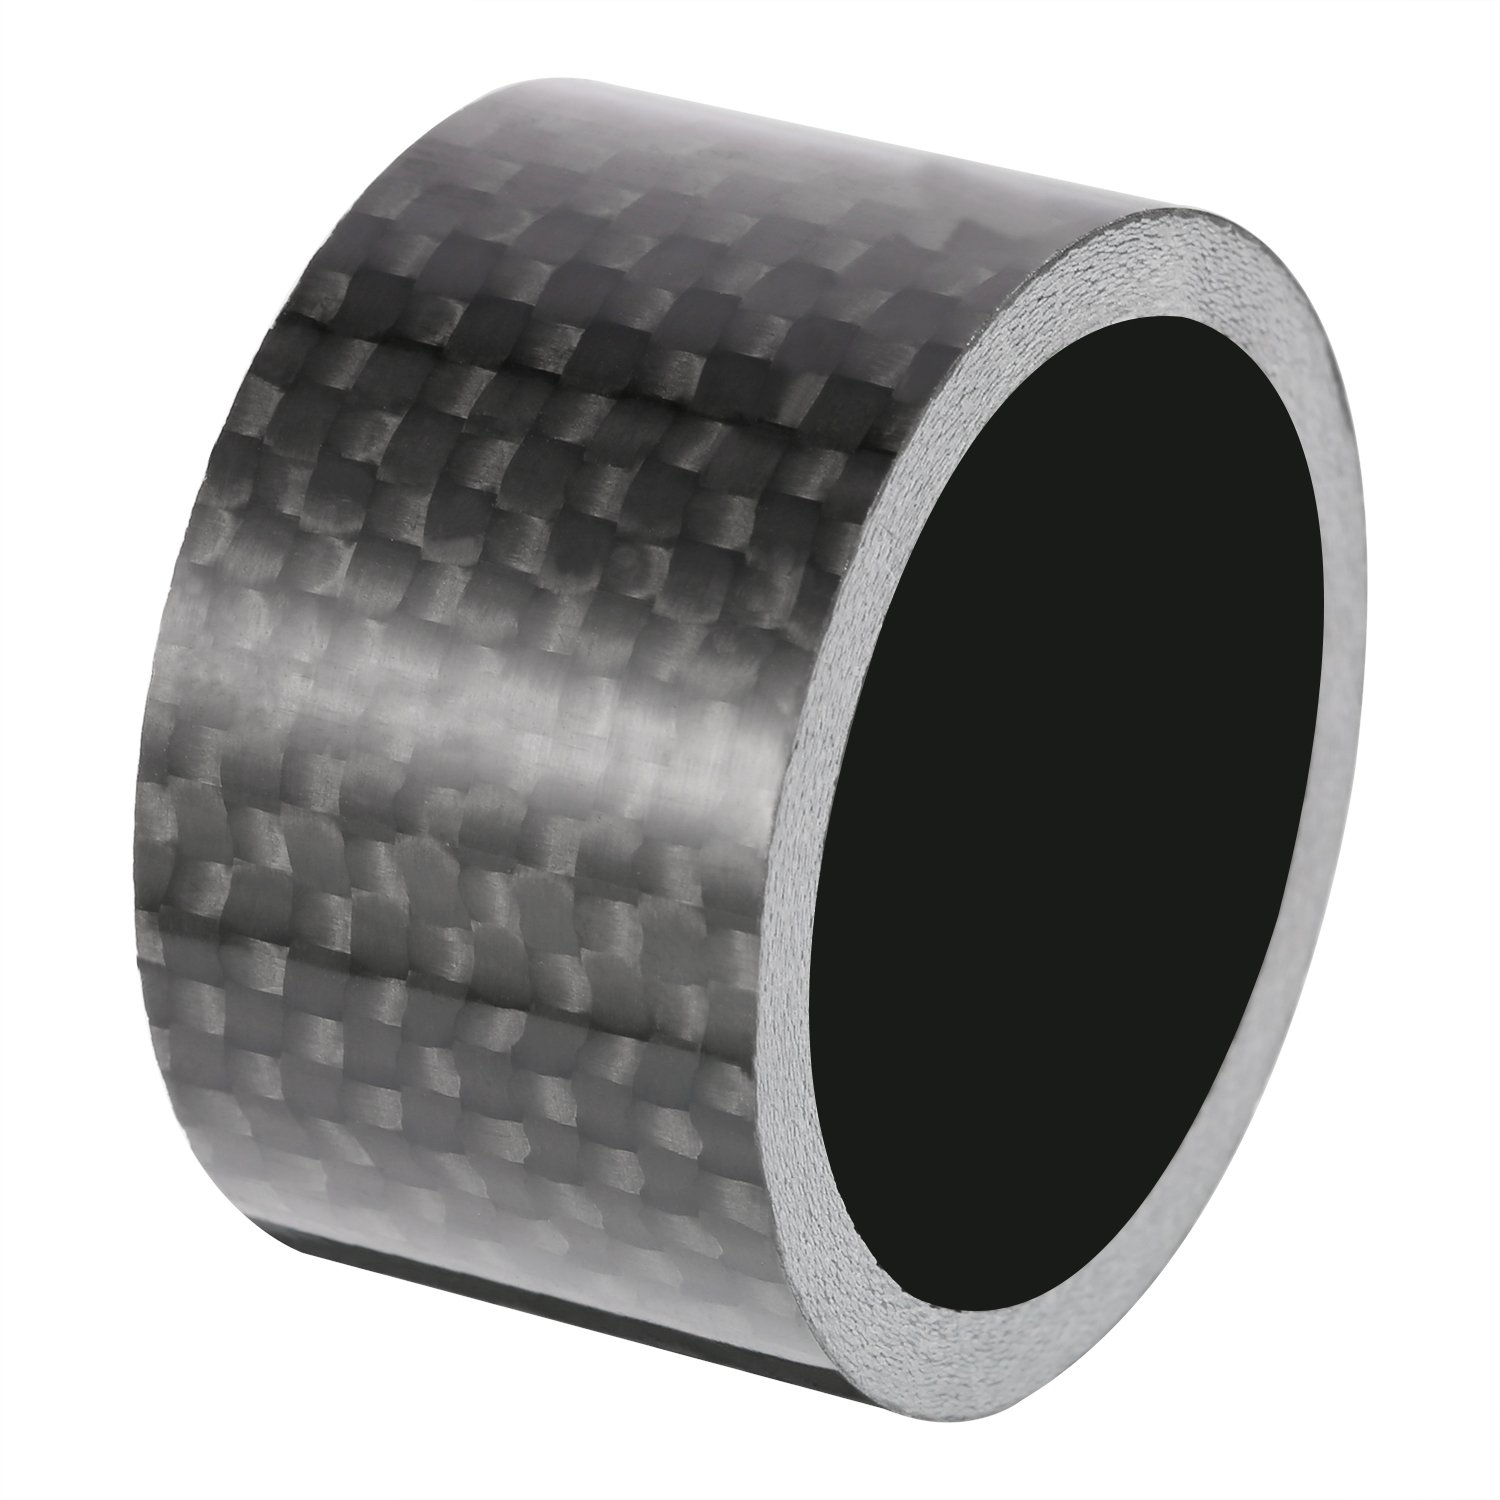 11 Pieces Bike Carbon Fiber Headset Spacer 1-1//8 Inch 20 15 10 5 3 2 1 mm 7 Size